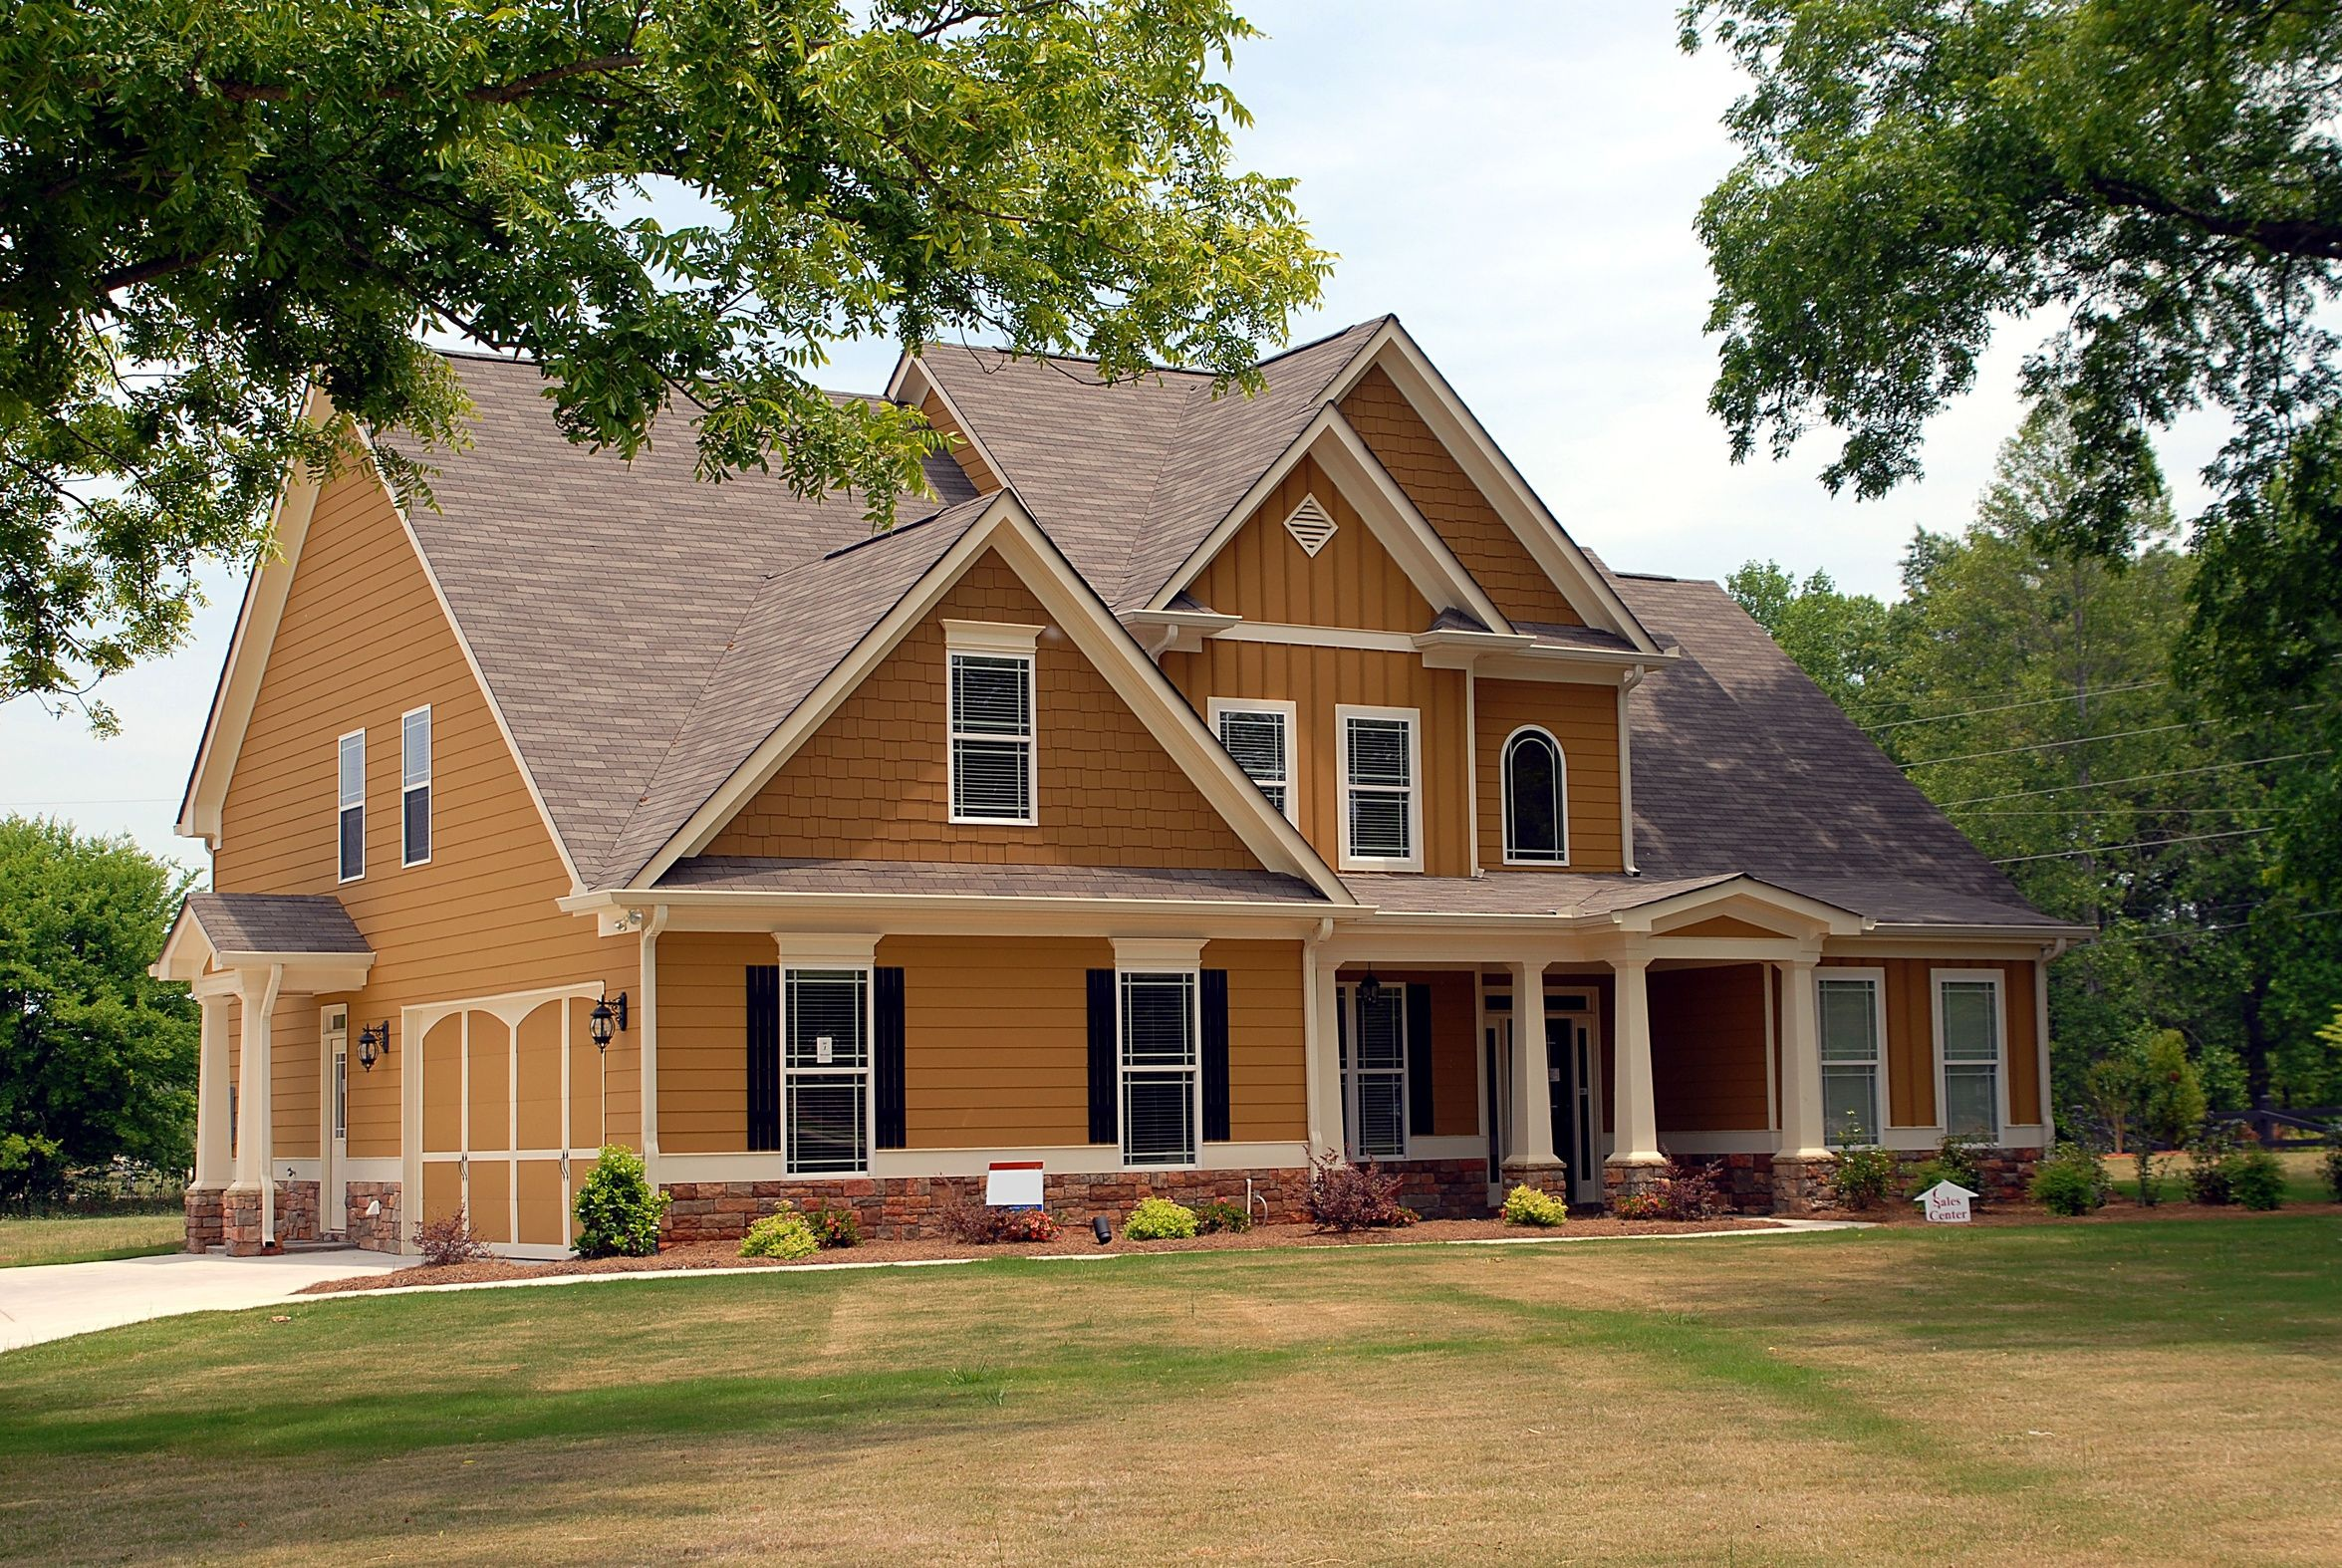 Brown exterior house paint colors looking for professional for Exterior paint colors images